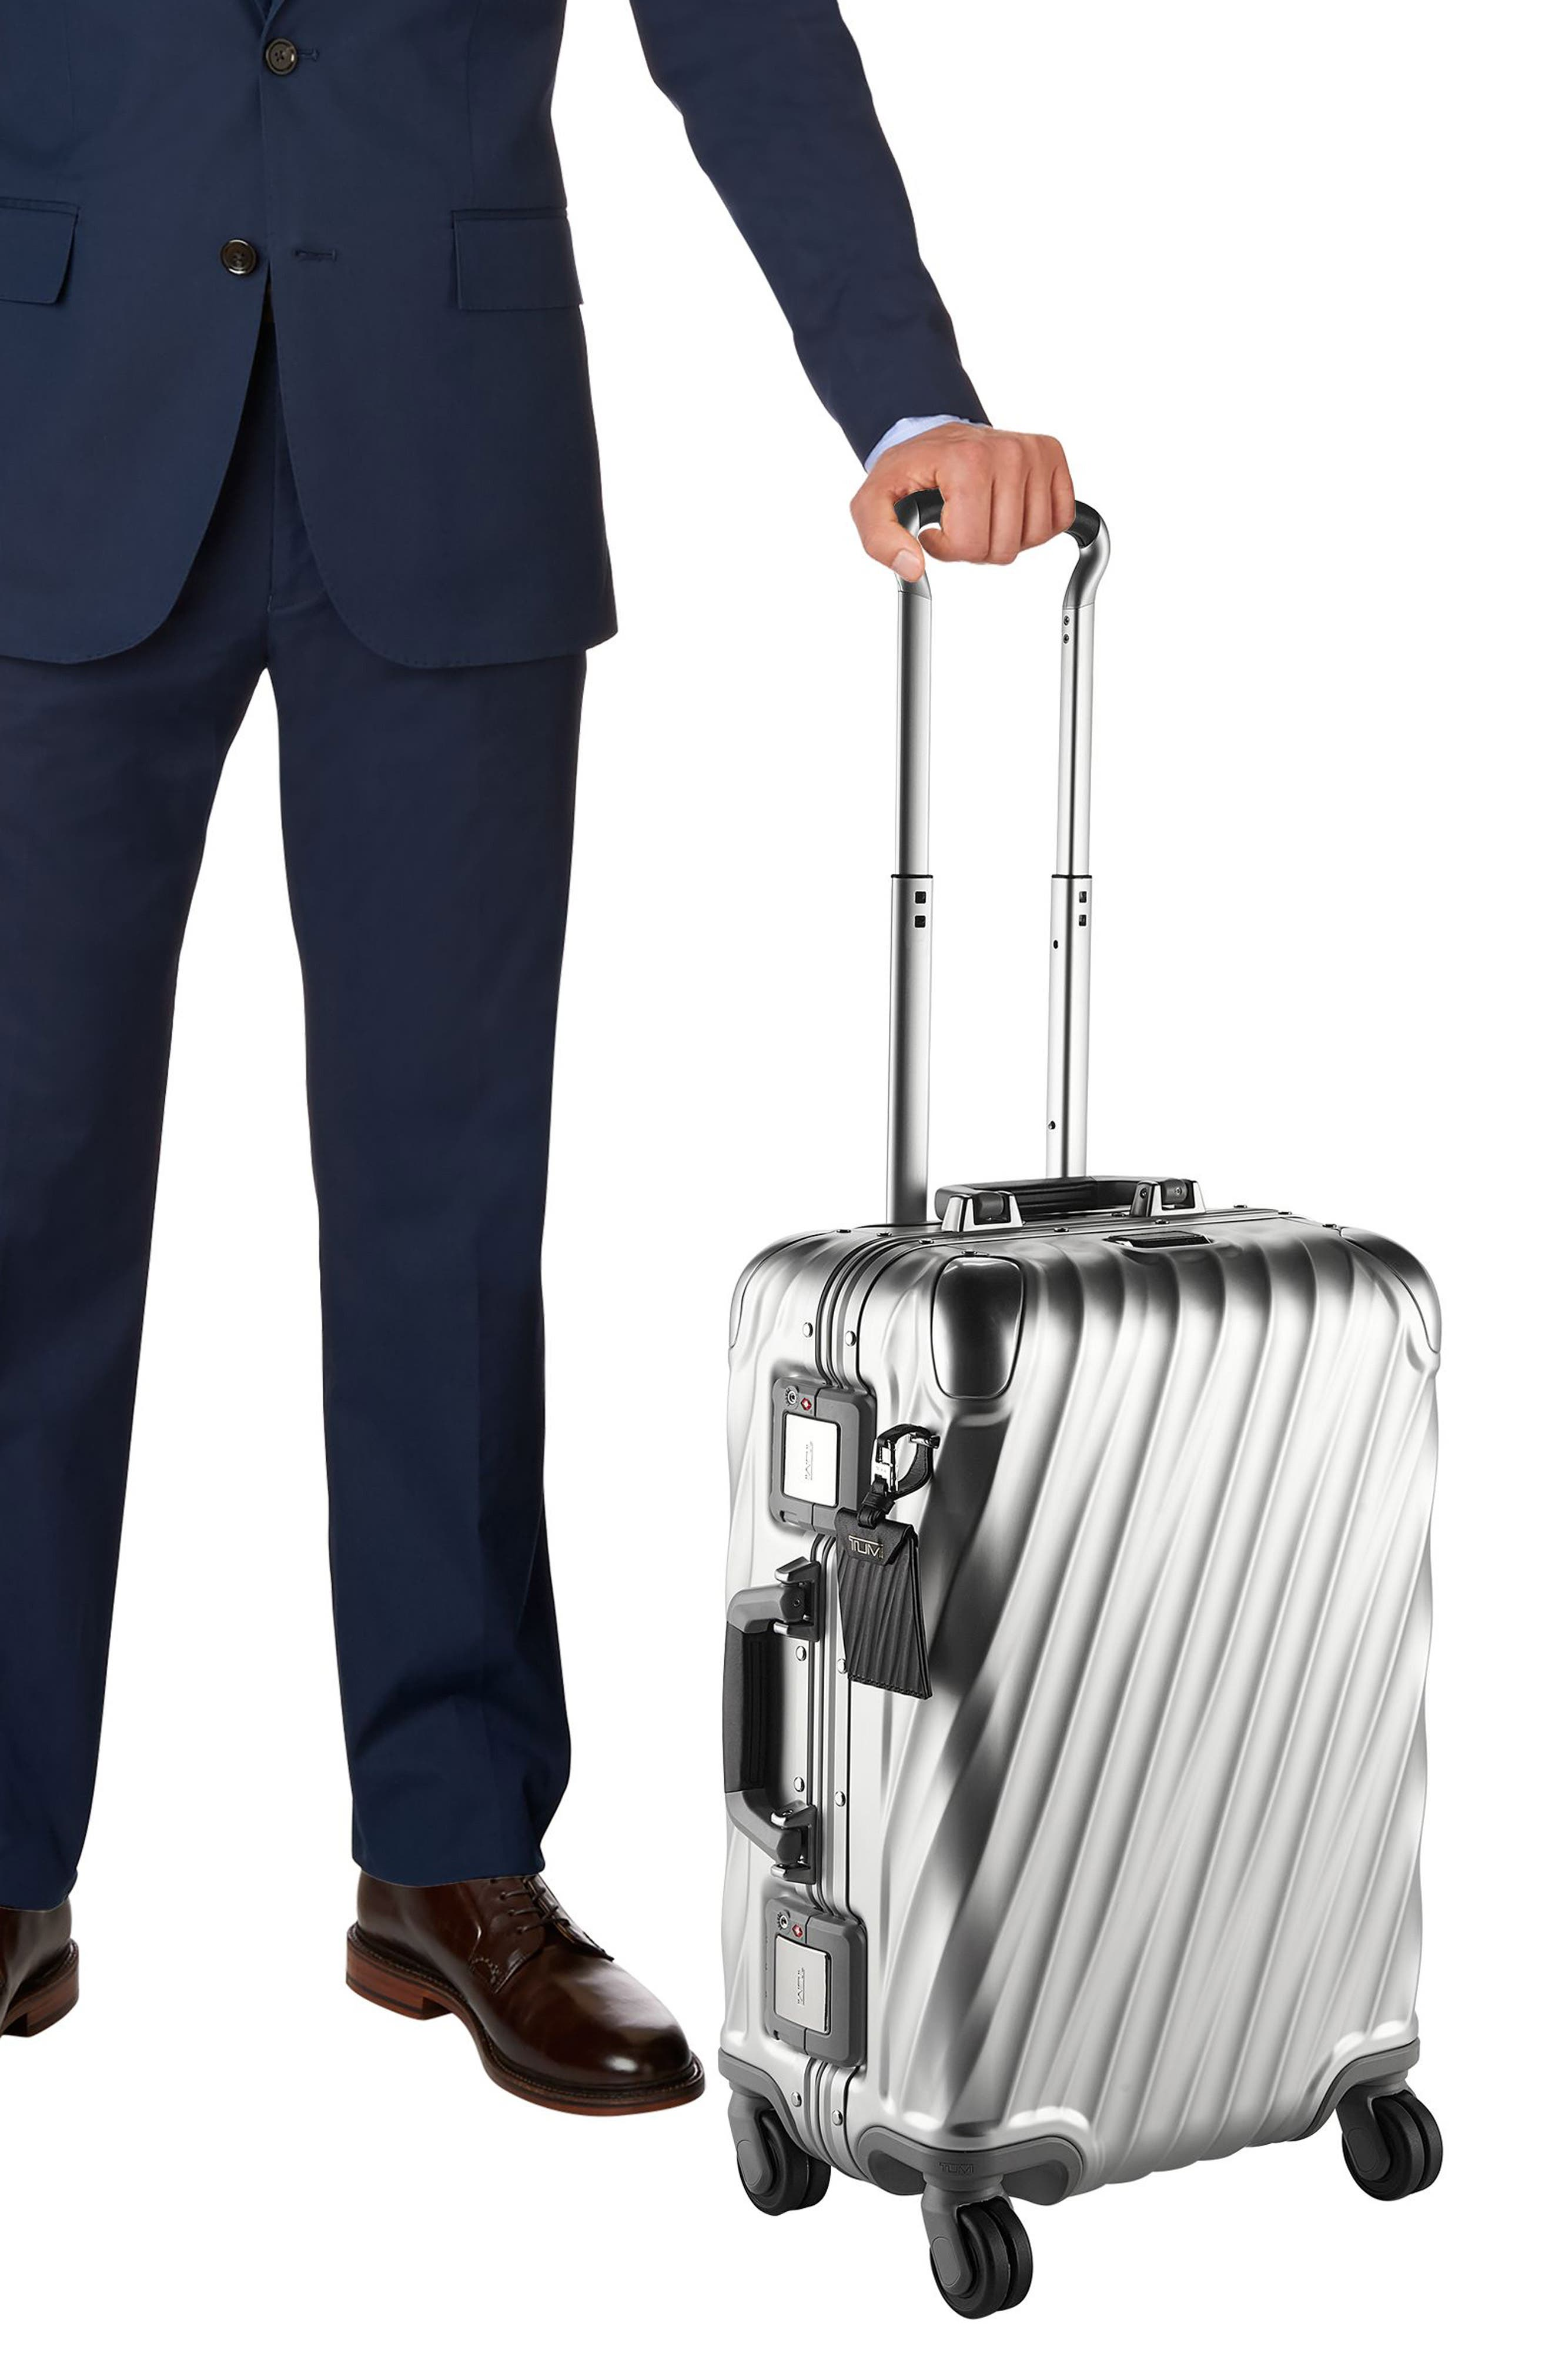 19 Degree 22-Inch Collection International Wheeled Aluminum Carry-On,                             Alternate thumbnail 7, color,                             SILVER